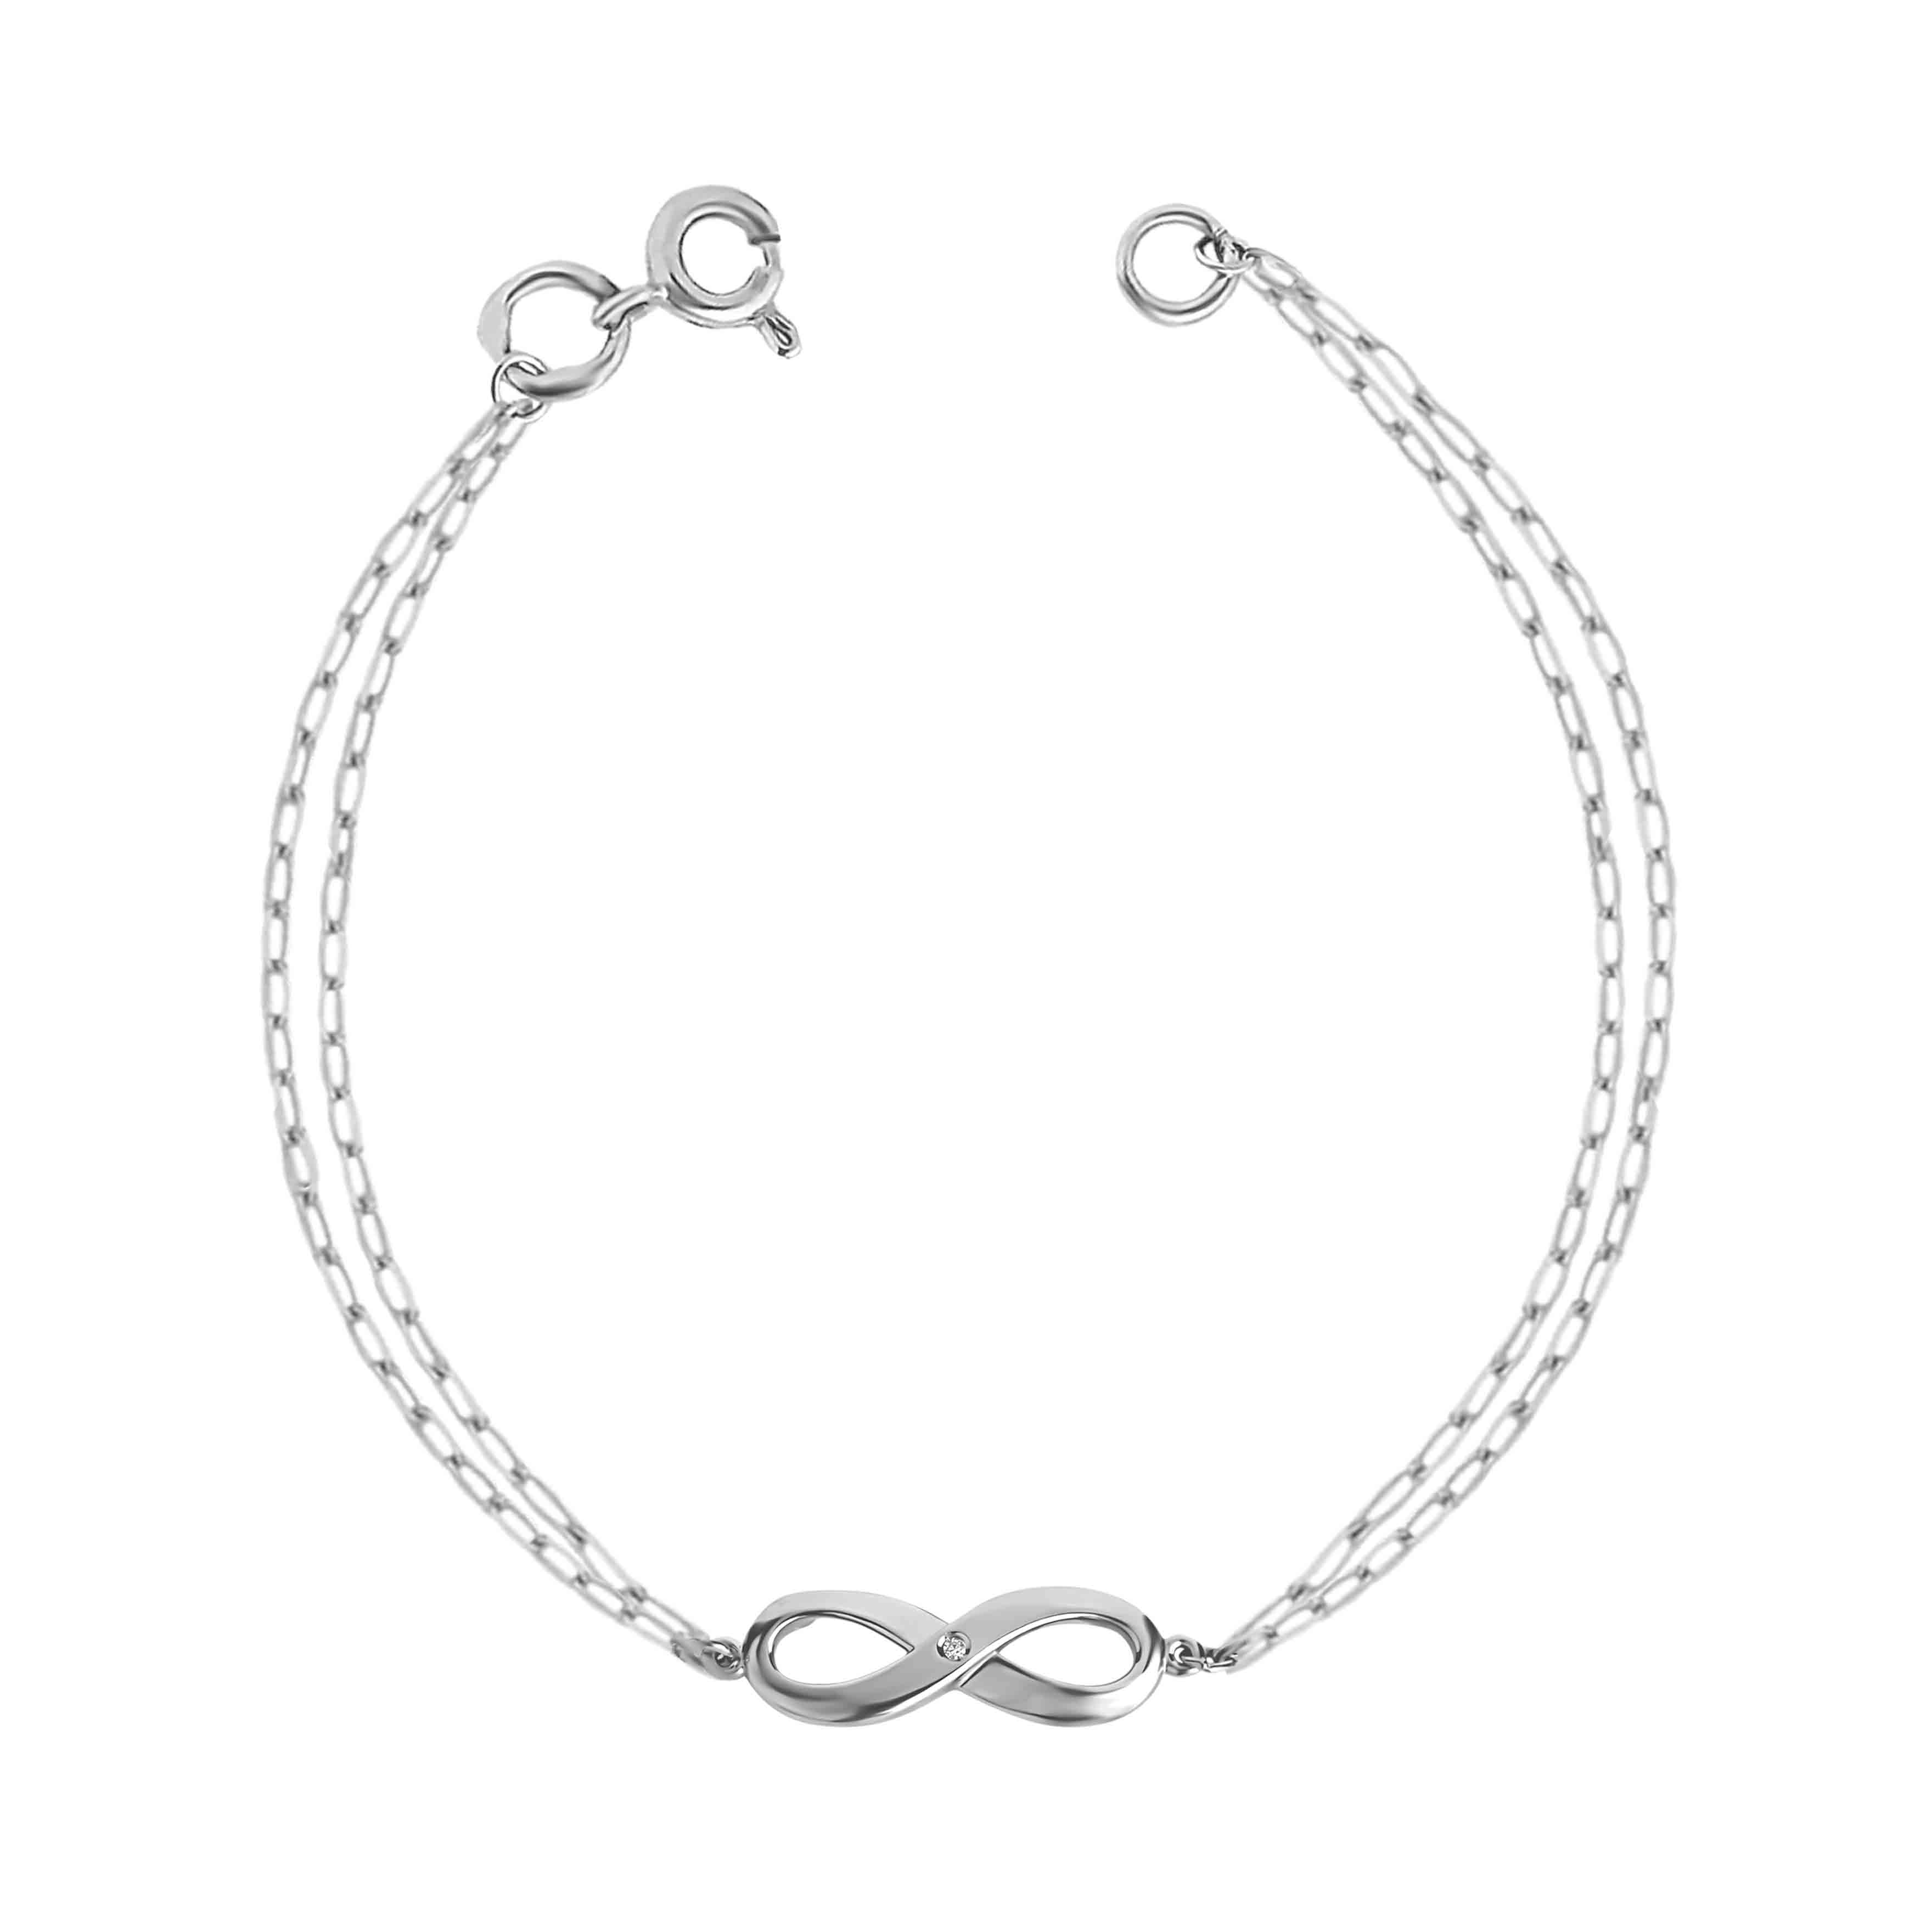 Diamond 'Infinity' bracelet in 14kt white gold. View 2